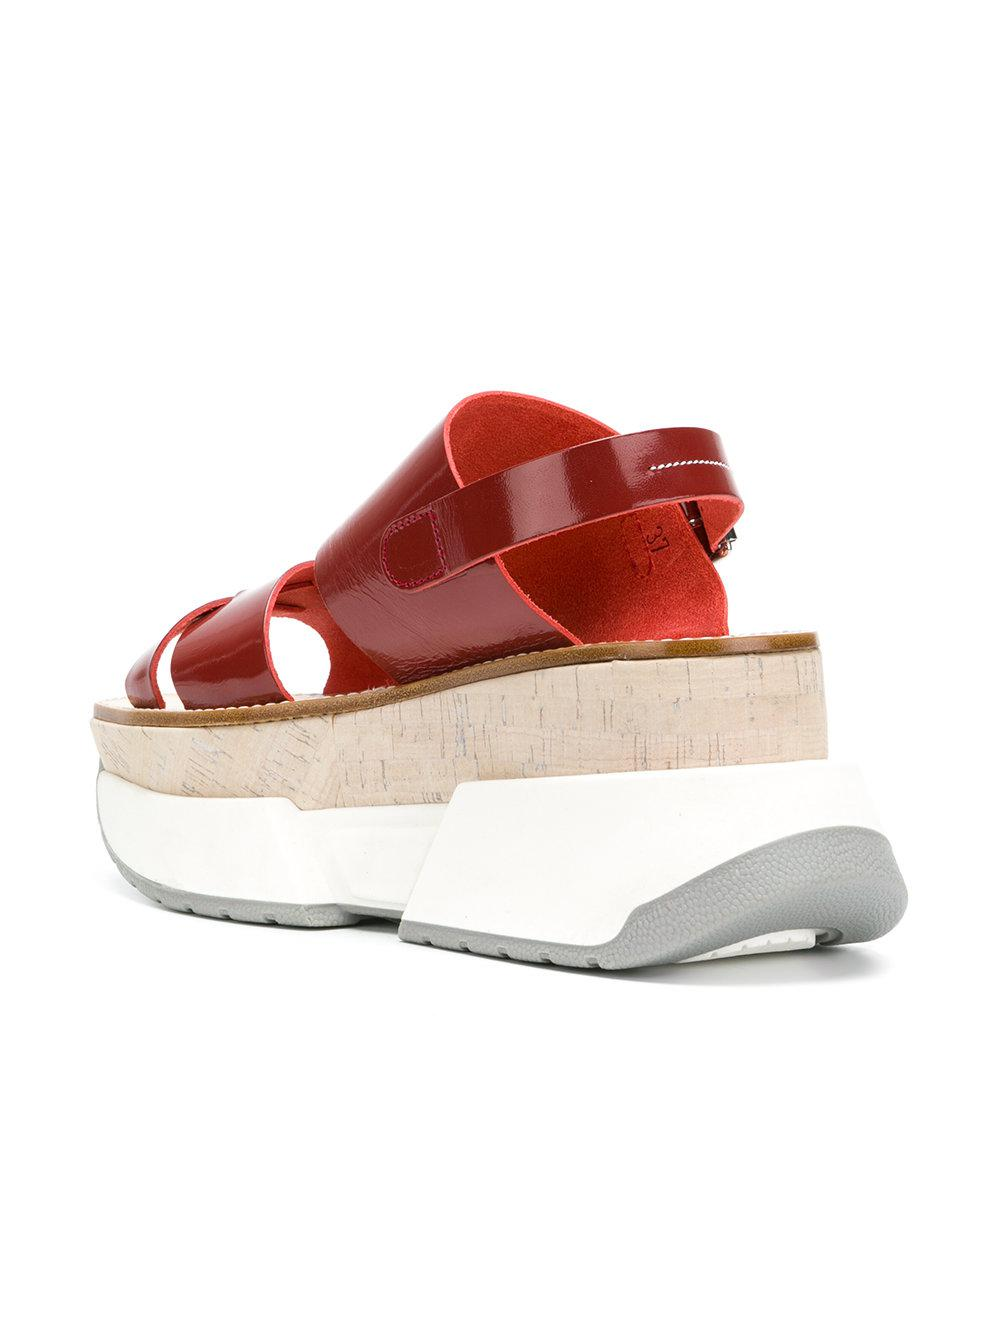 platform lace-up sneakers - Red Maison Martin Margiela jhagHM